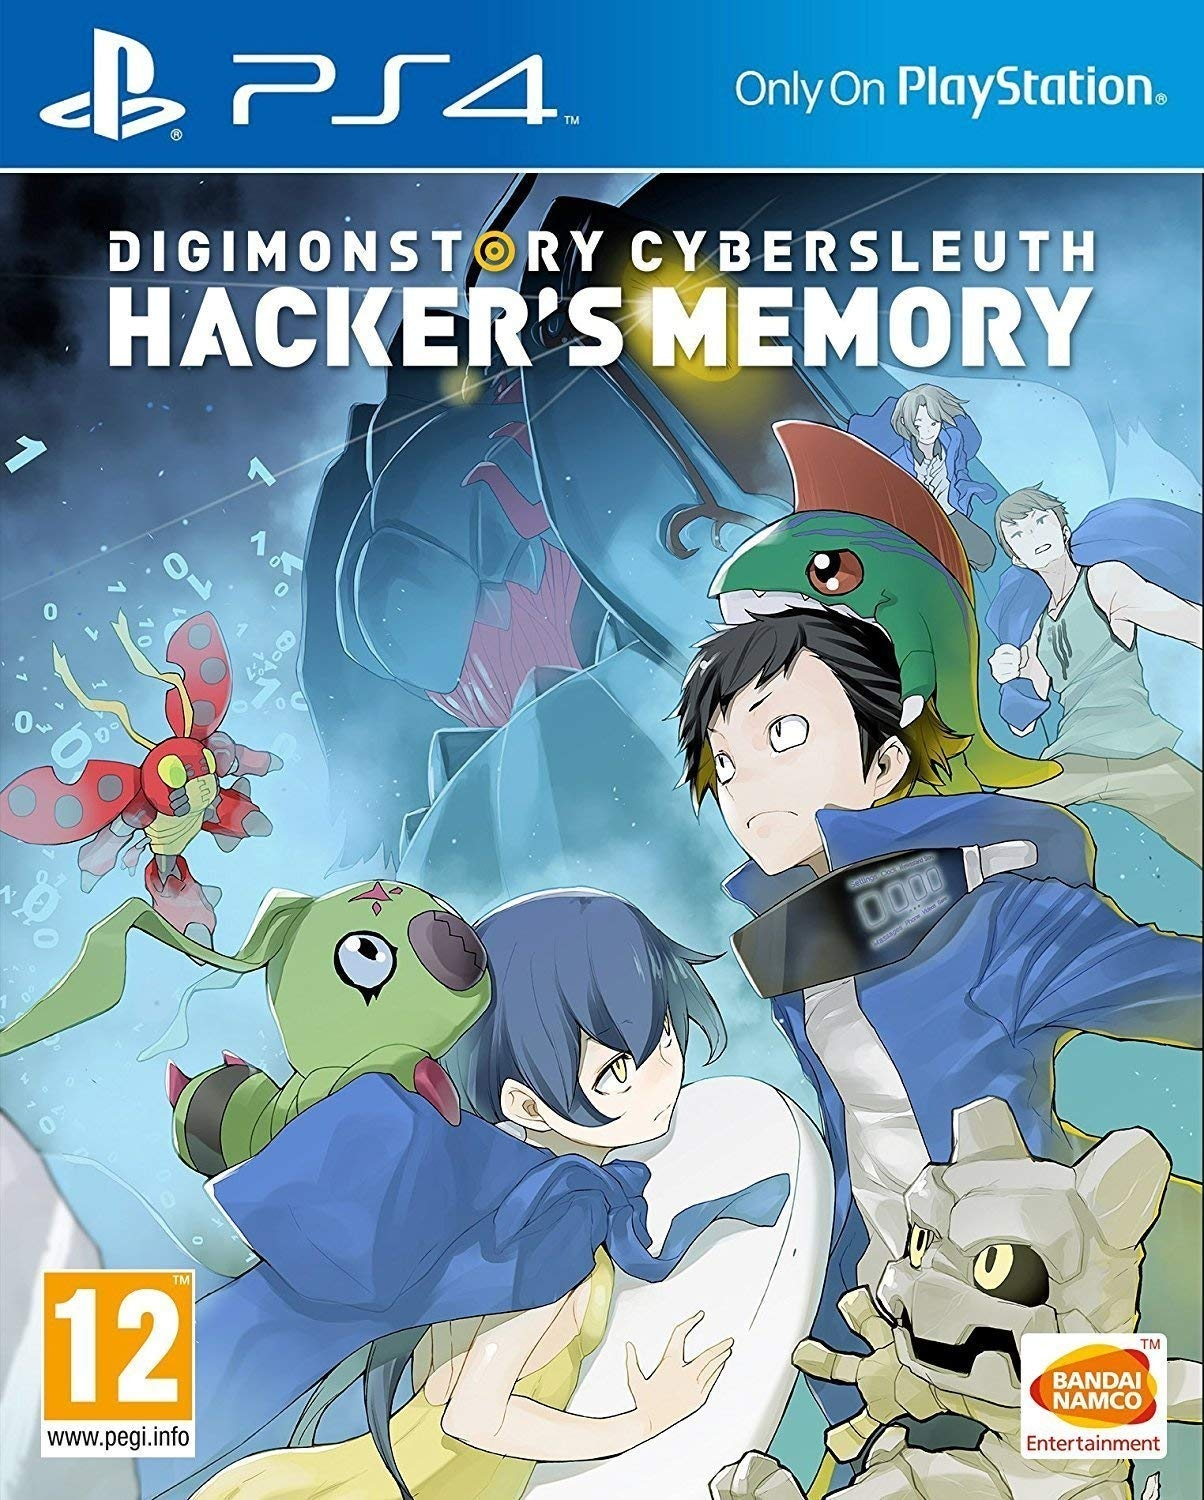 PS4 DIGIMON STORY CYBER SLEUTH HACKER MEMORY R2 - G2A COM